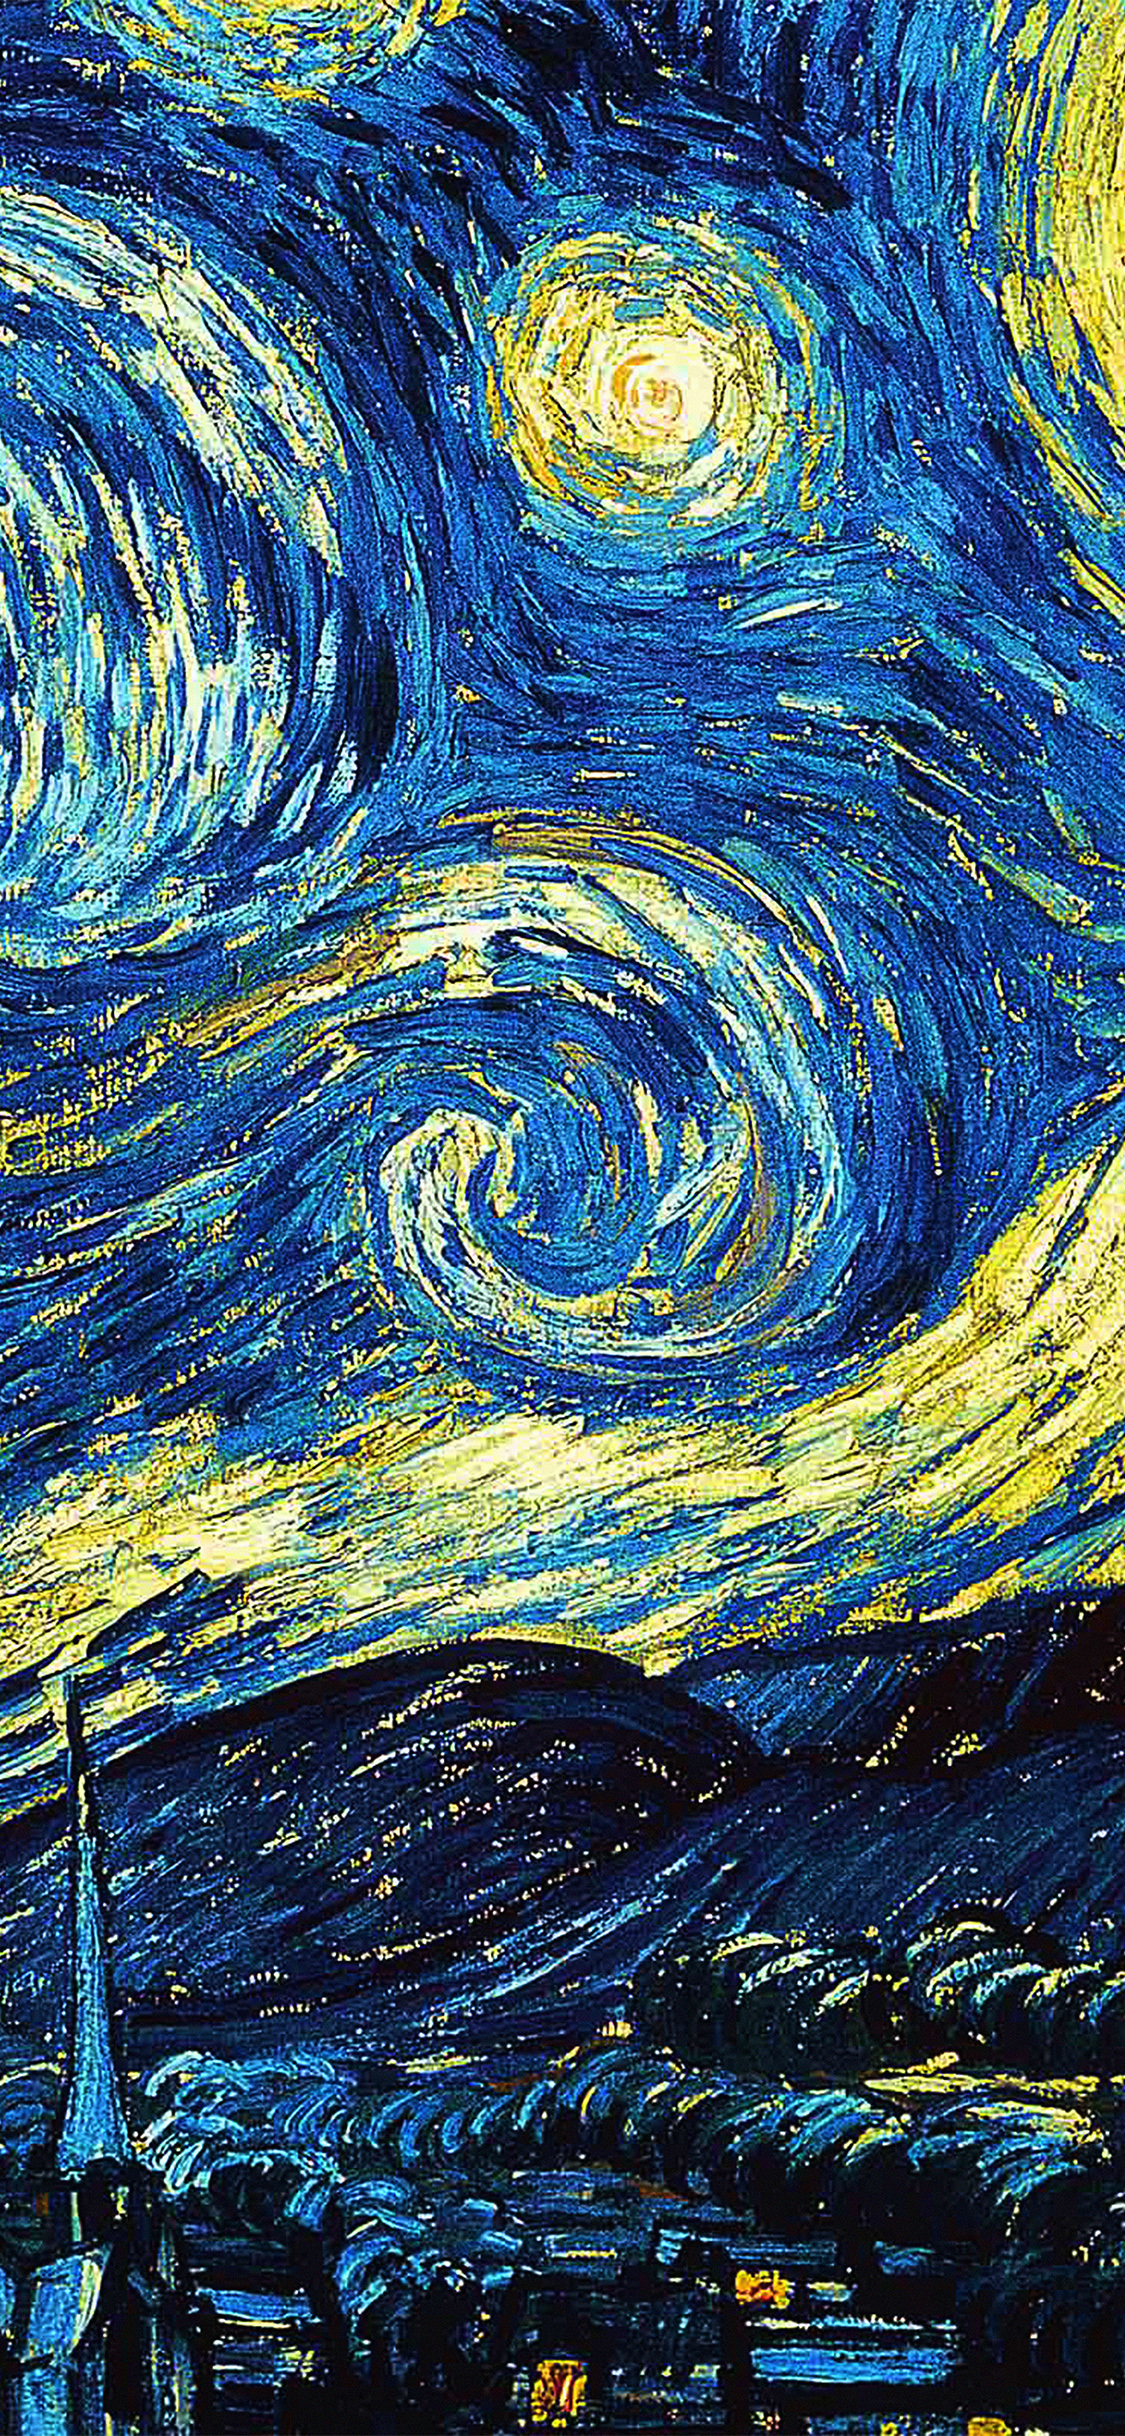 Iphone Aesthetic Wallpaper Ar55 Vicent Van Gogh Starry Night Art Classic Wallpaper